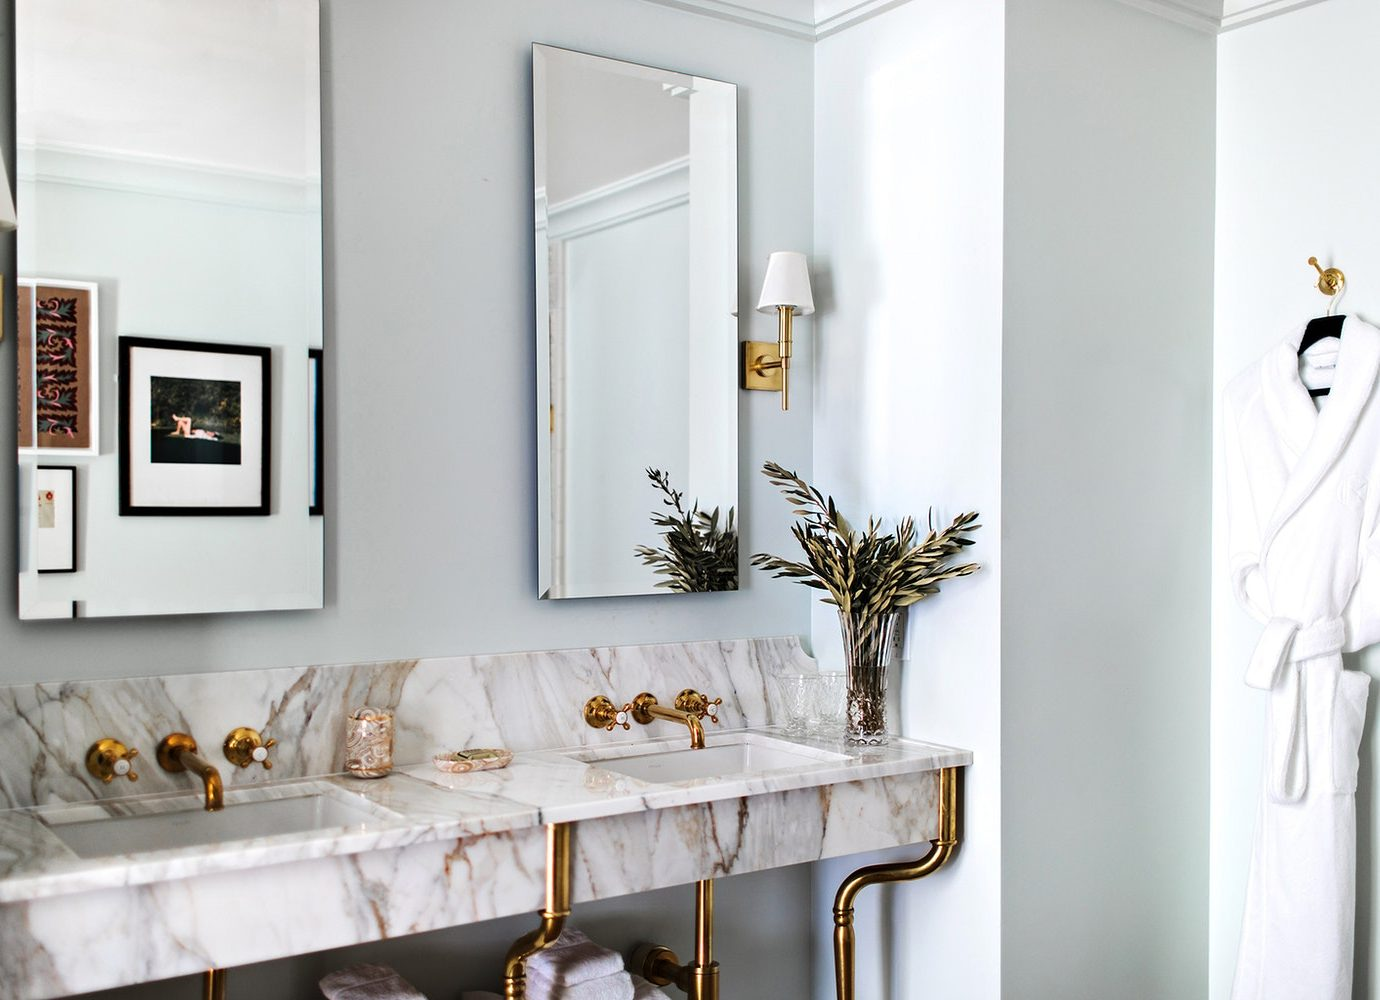 marble bathroom at The NoMad Hotel Los Angeles